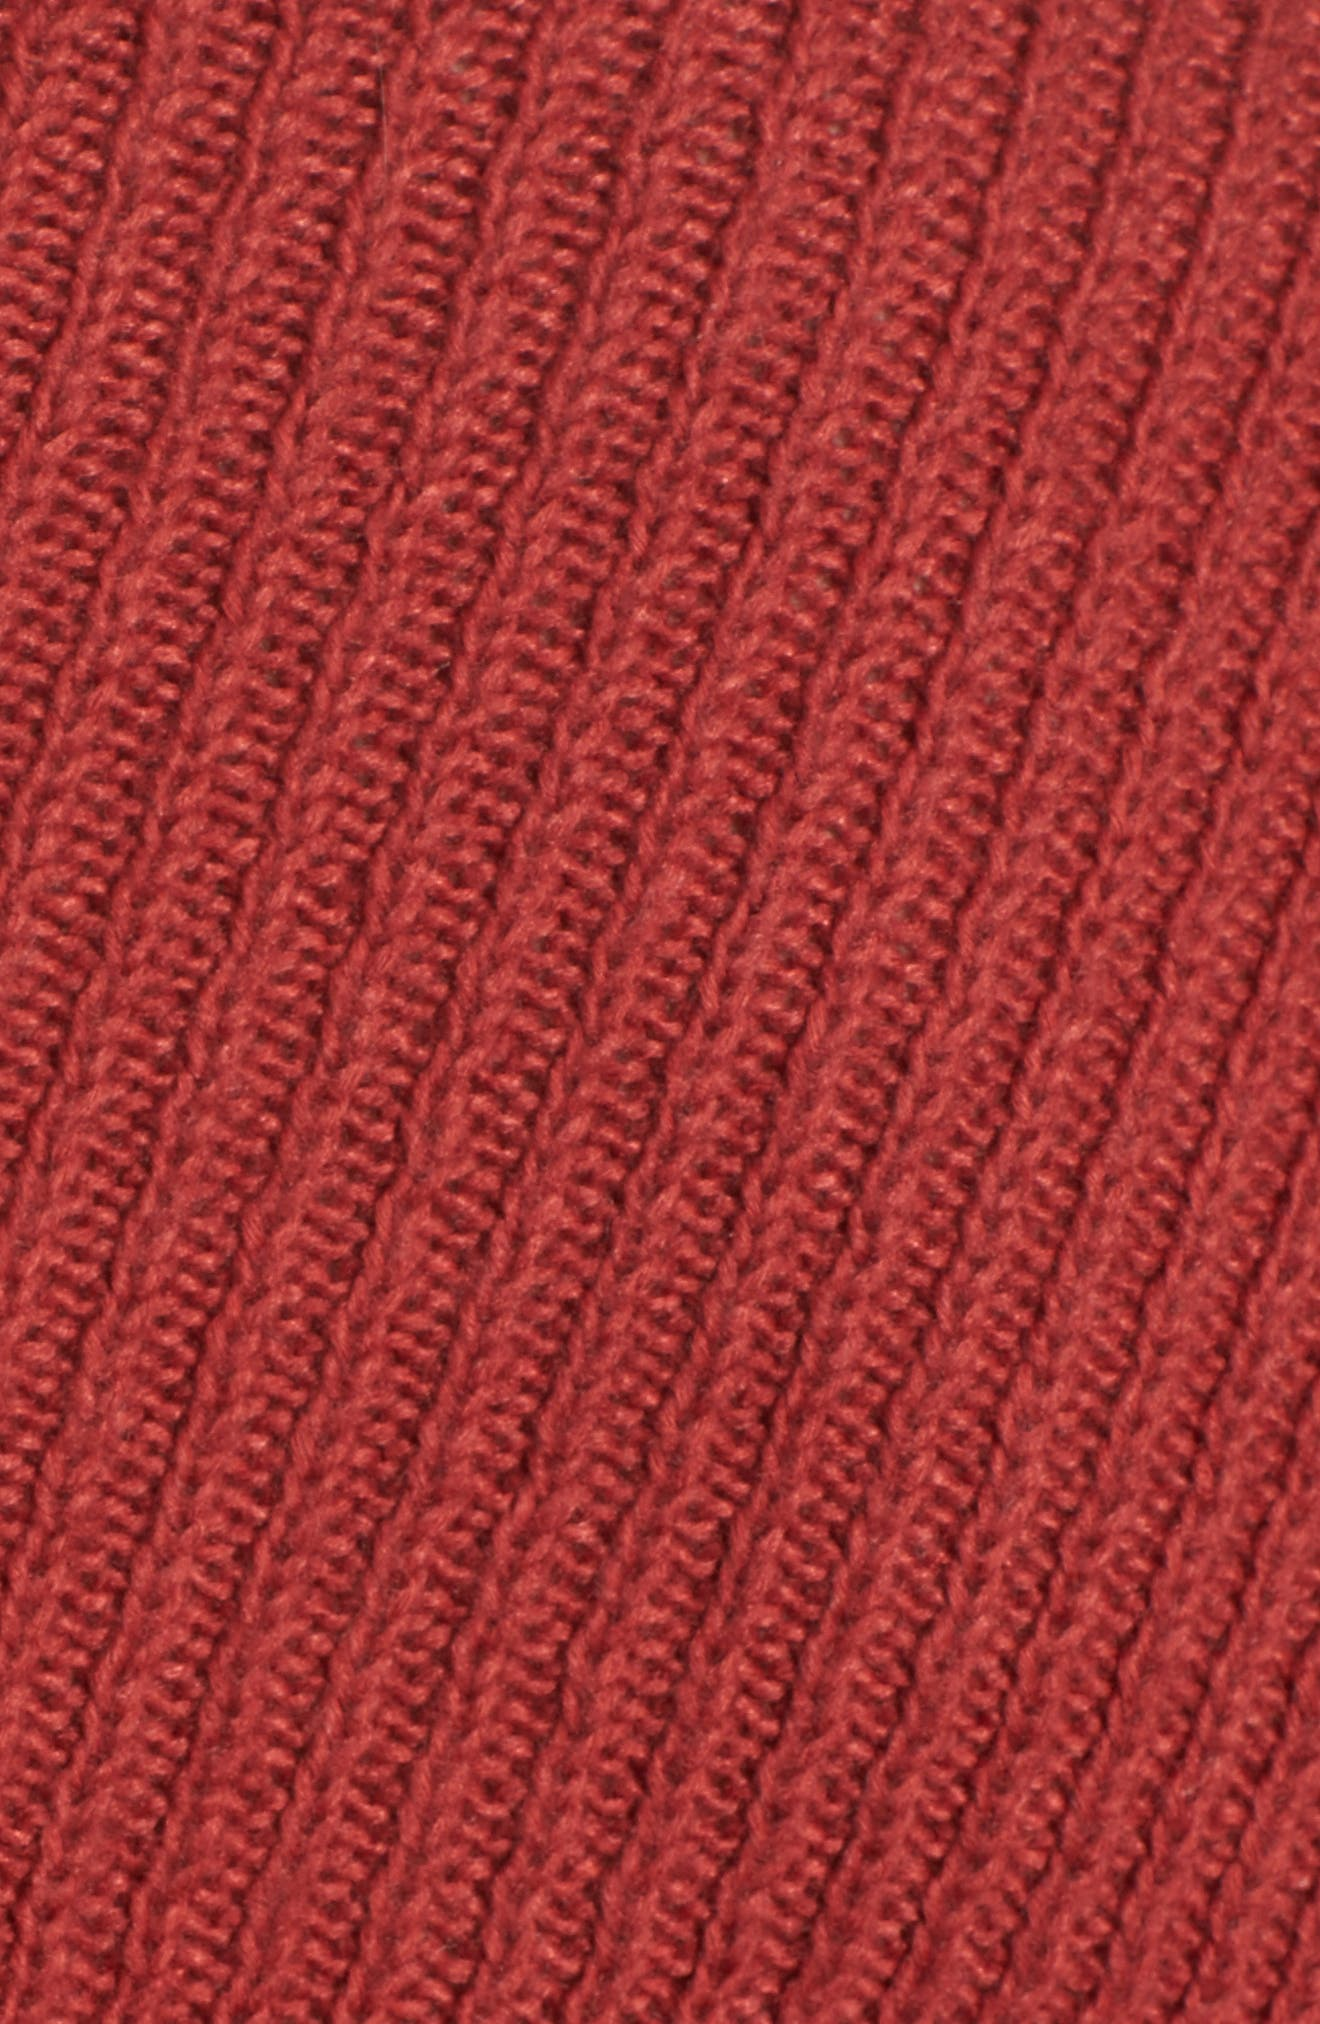 Randy Turtleneck Sweater,                             Alternate thumbnail 5, color,                             Brick